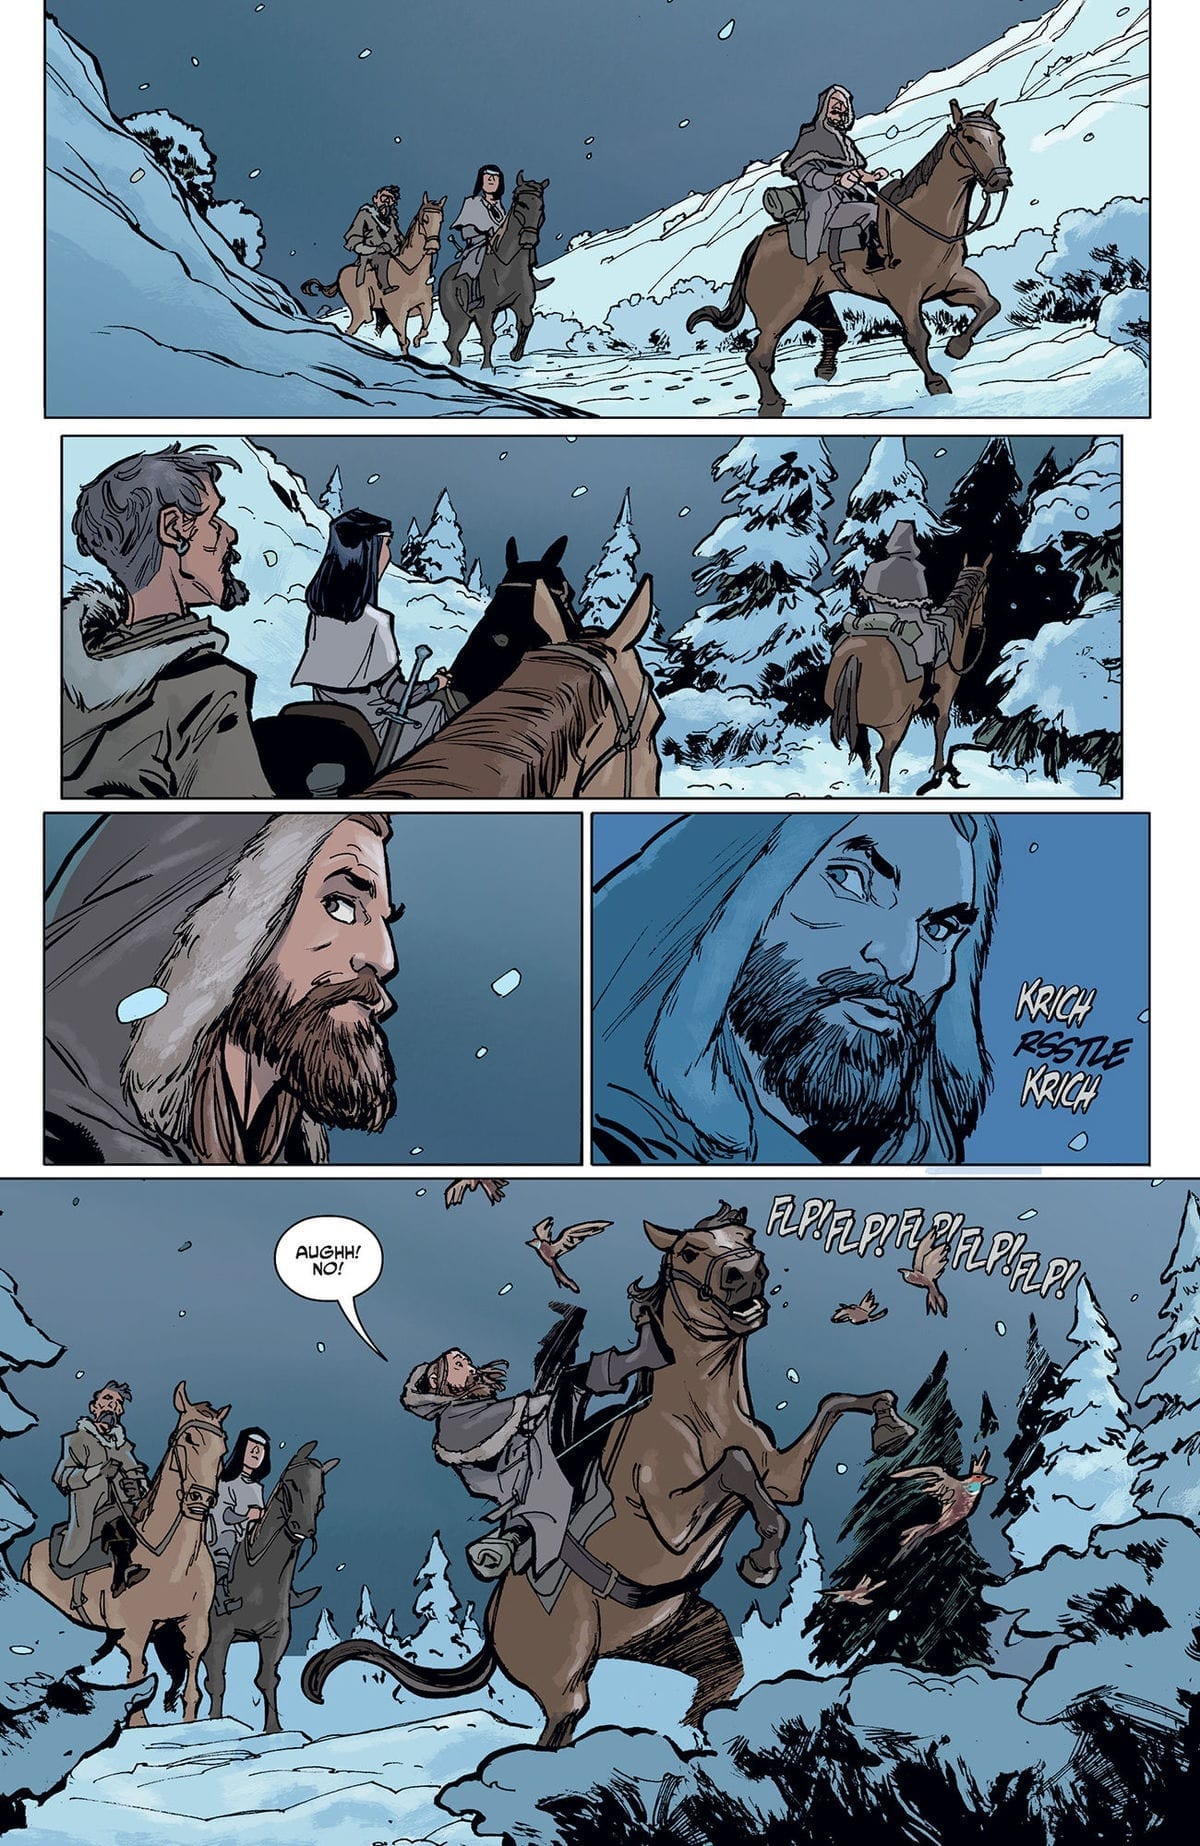 CRONE #1 - No Rest for the Wicked 5